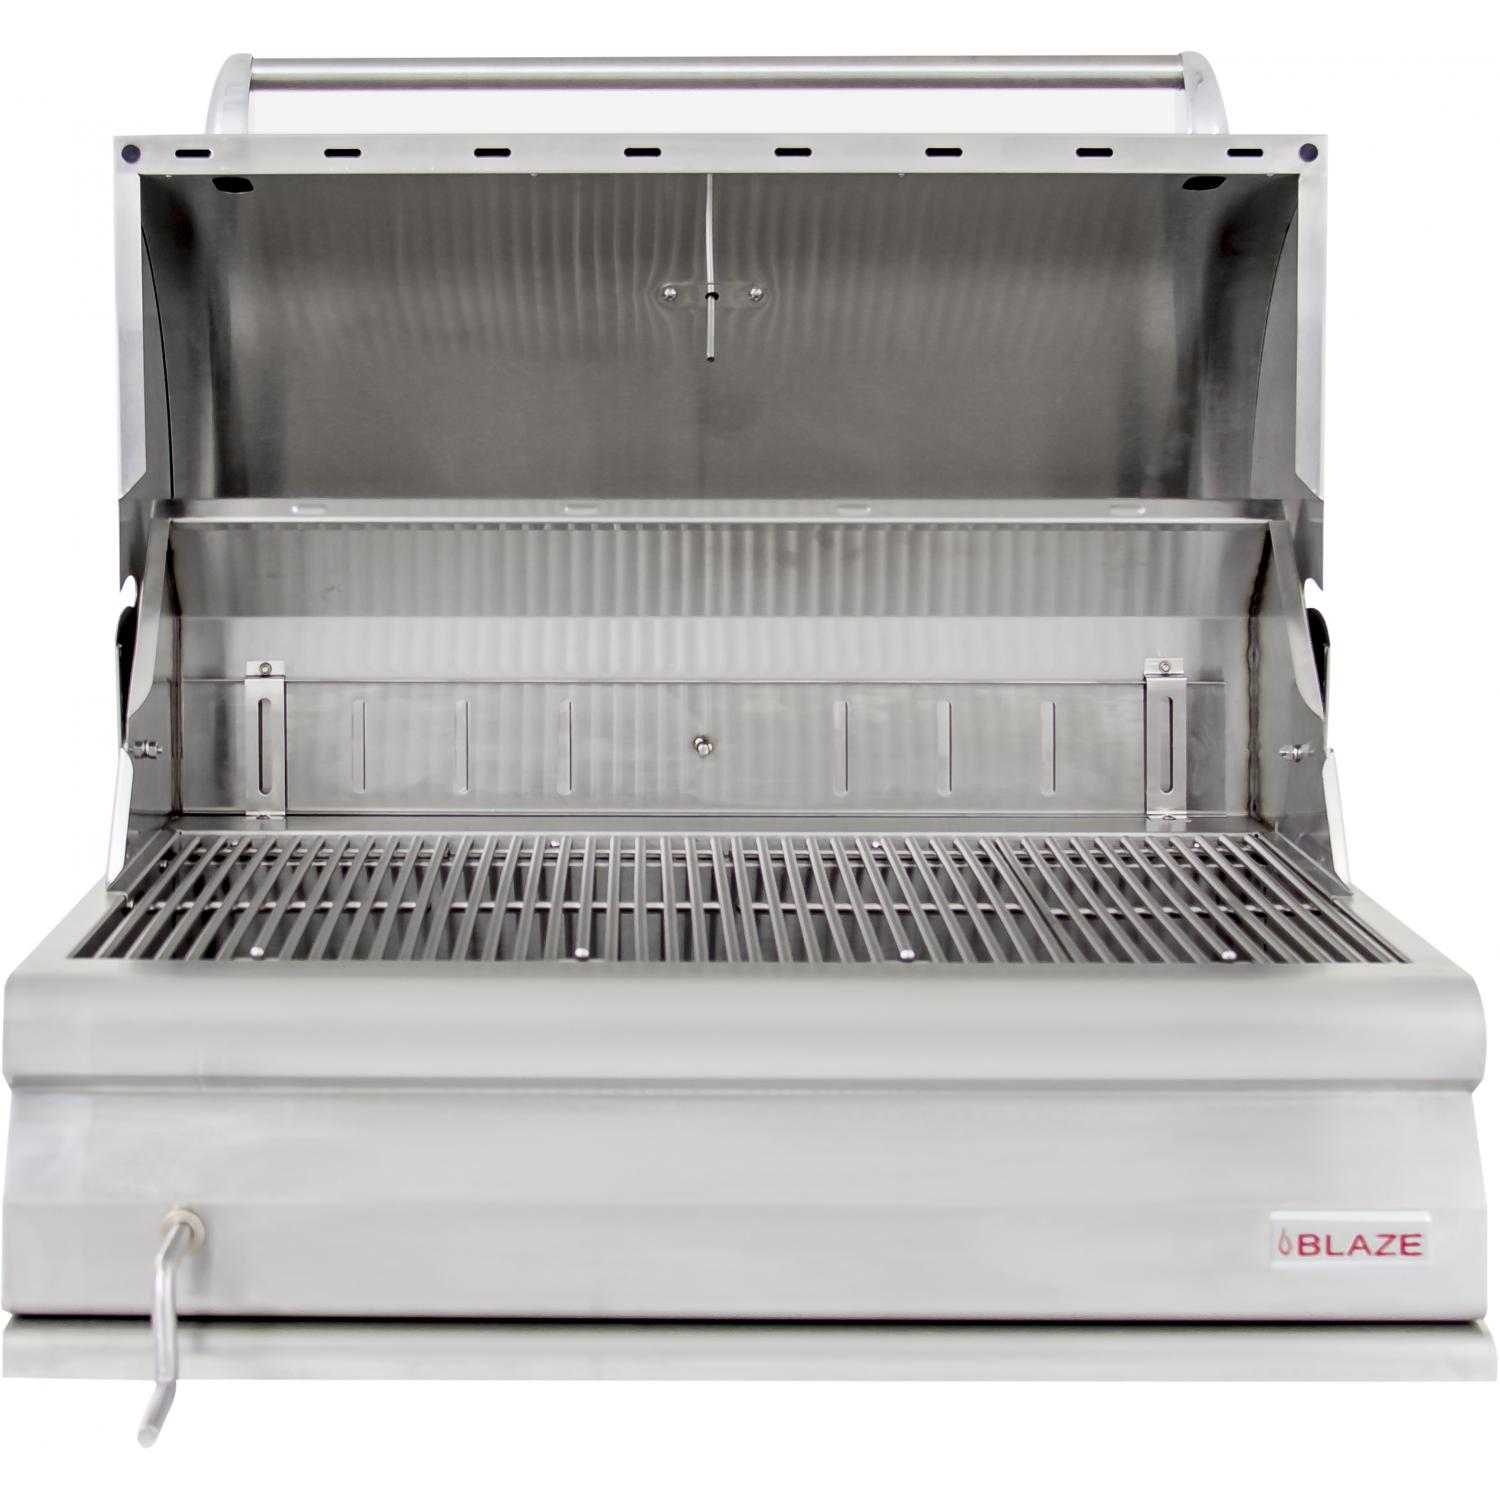 Blaze 32 Inch Built In Stainless Steel Charcoal Grill With Adjustable Charcoal Tray Extreme